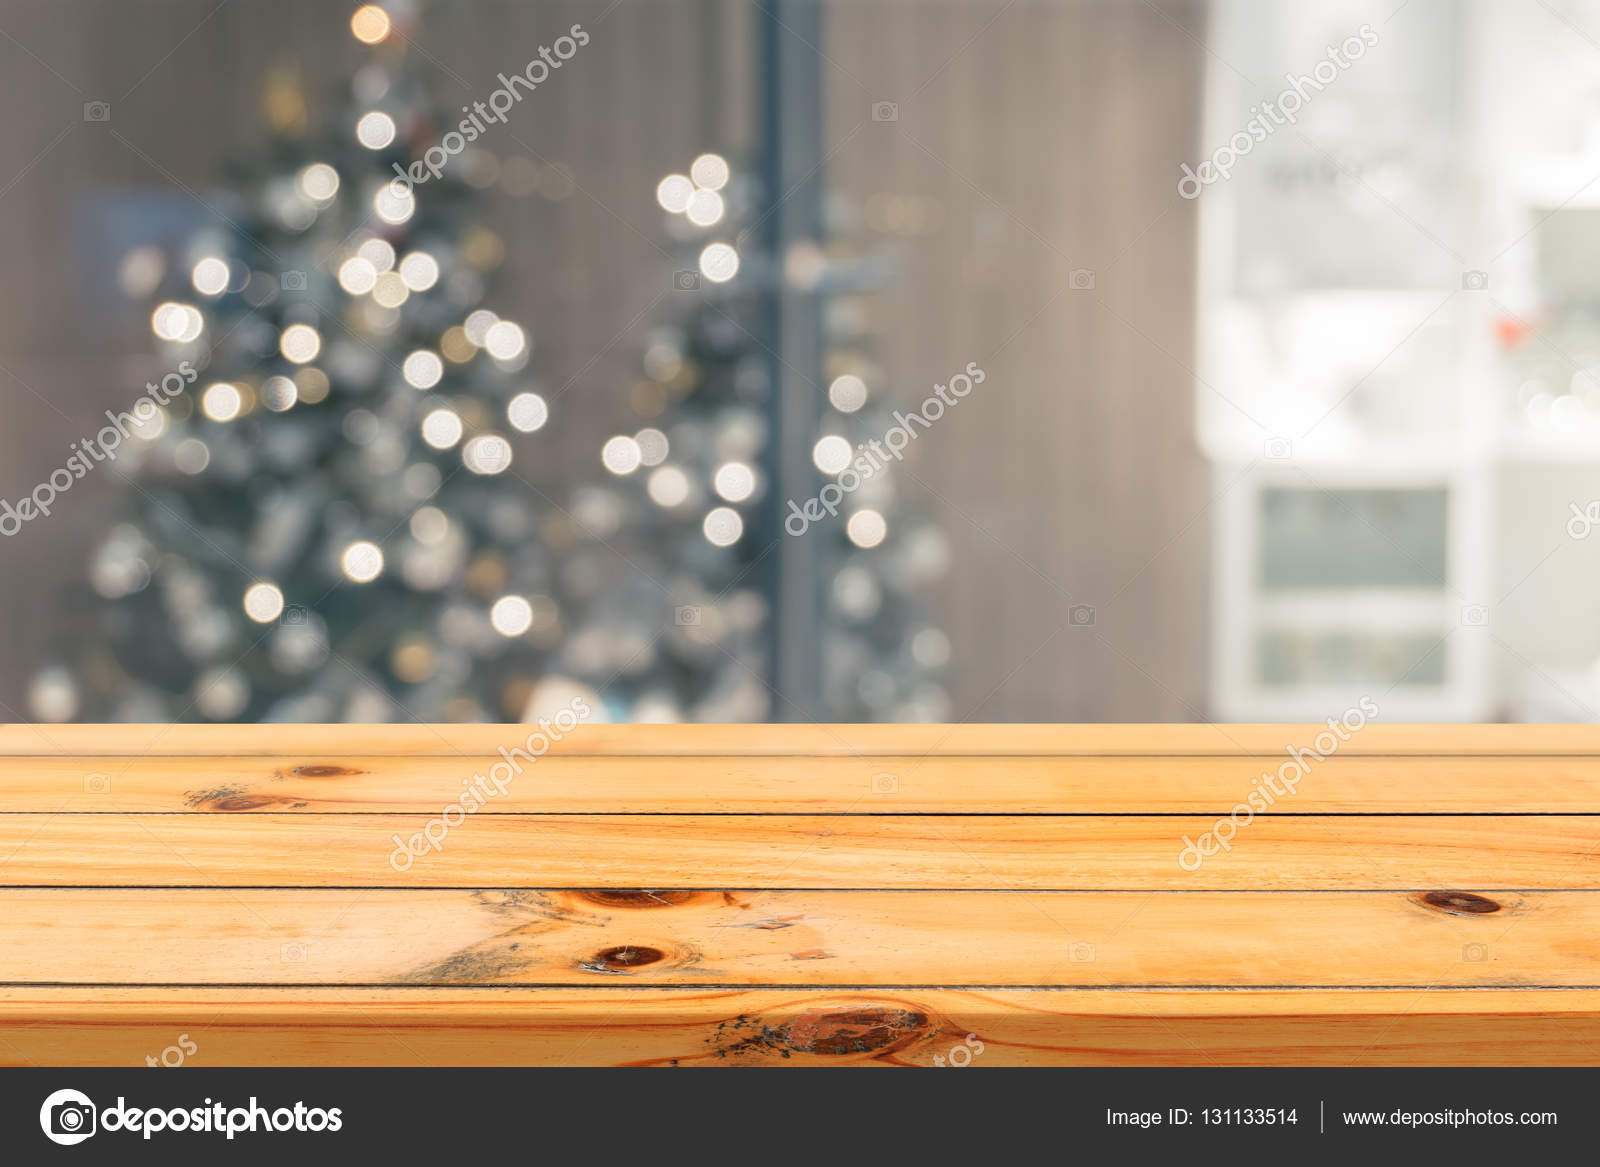 Wooden board empty table top on of blurred background. Perspective brown wood table over blur